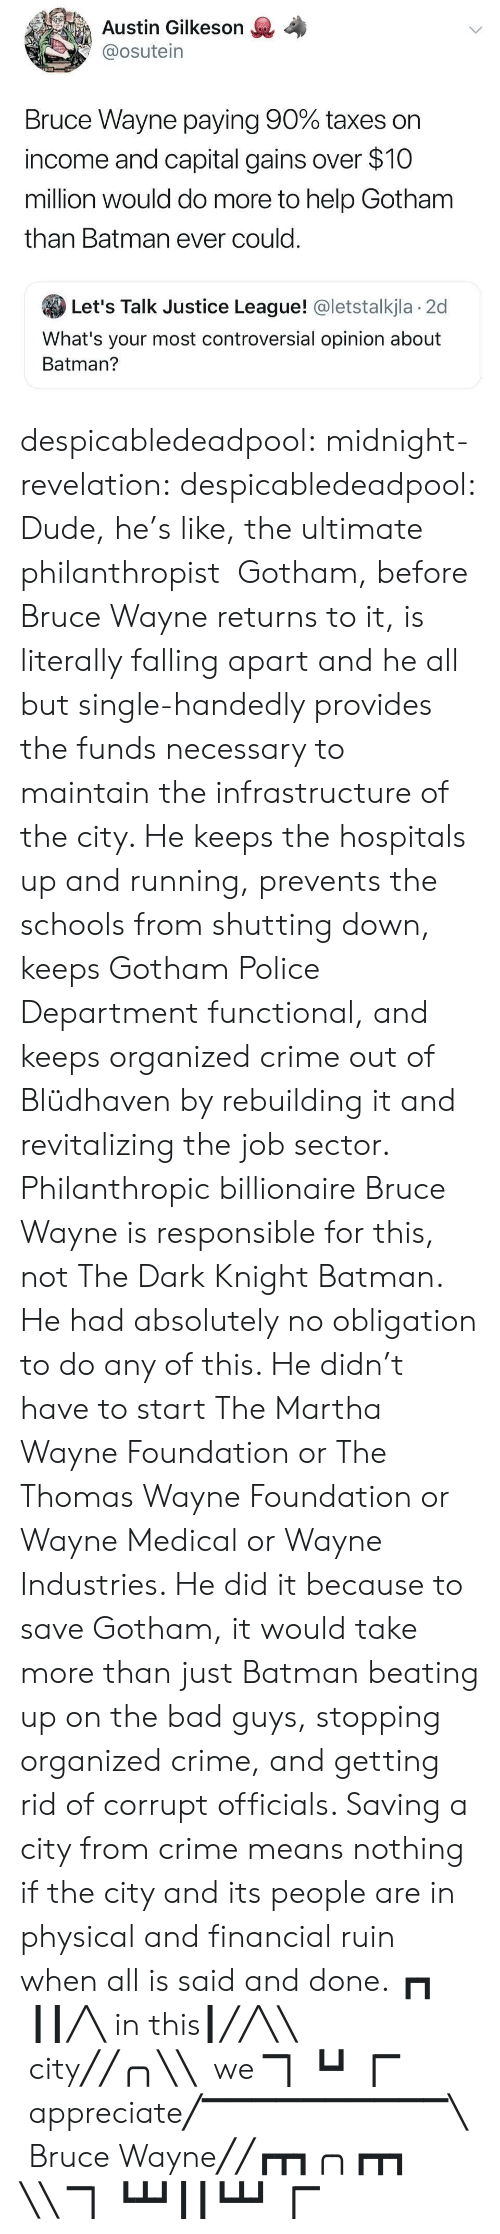 Appreciate: Austin Gilkeson  @osutein  Bruce Wayne paying 90% taxes on  income and capital gains over $10  million would do more to help Gotham  than Batman ever could.  Let's Talk Justice League! @letstalkjla 2d  What's your most controversial opinion about  Batman? despicabledeadpool:  midnight-revelation: despicabledeadpool:  Dude, he's like, the ultimate philanthropist   Gotham, before Bruce Wayne returns to it, is literally falling apart and he all but single-handedly provides the funds necessary to maintain the infrastructure of the city. He keeps the hospitals up and running, prevents the schools from shutting down, keeps Gotham Police Department functional, and keeps organized crime out of Blüdhaven by rebuilding it and revitalizing the job sector. Philanthropic billionaire Bruce Wayne is responsible for this, not The Dark Knight Batman. He had absolutely no obligation to do any of this. He didn't have to start The Martha Wayne Foundation or The Thomas Wayne Foundation or Wayne Medical or Wayne Industries. He did it because to save Gotham, it would take more than just Batman beating up on the bad guys, stopping organized crime, and getting rid of corrupt officials. Saving a city from crime means nothing if the city and its people are in physical and financial ruin when all is said and done.  ┏┓  ┃┃╱╲ in this┃╱╱╲╲  city╱╱╭╮╲╲  we ▔▏┗┛▕▔    appreciate╱▔▔▔▔▔▔▔▔▔▔╲  Bruce Wayne╱╱┏┳┓╭╮┏┳┓ ╲╲ ▔▏┗┻┛┃┃┗┻┛▕▔